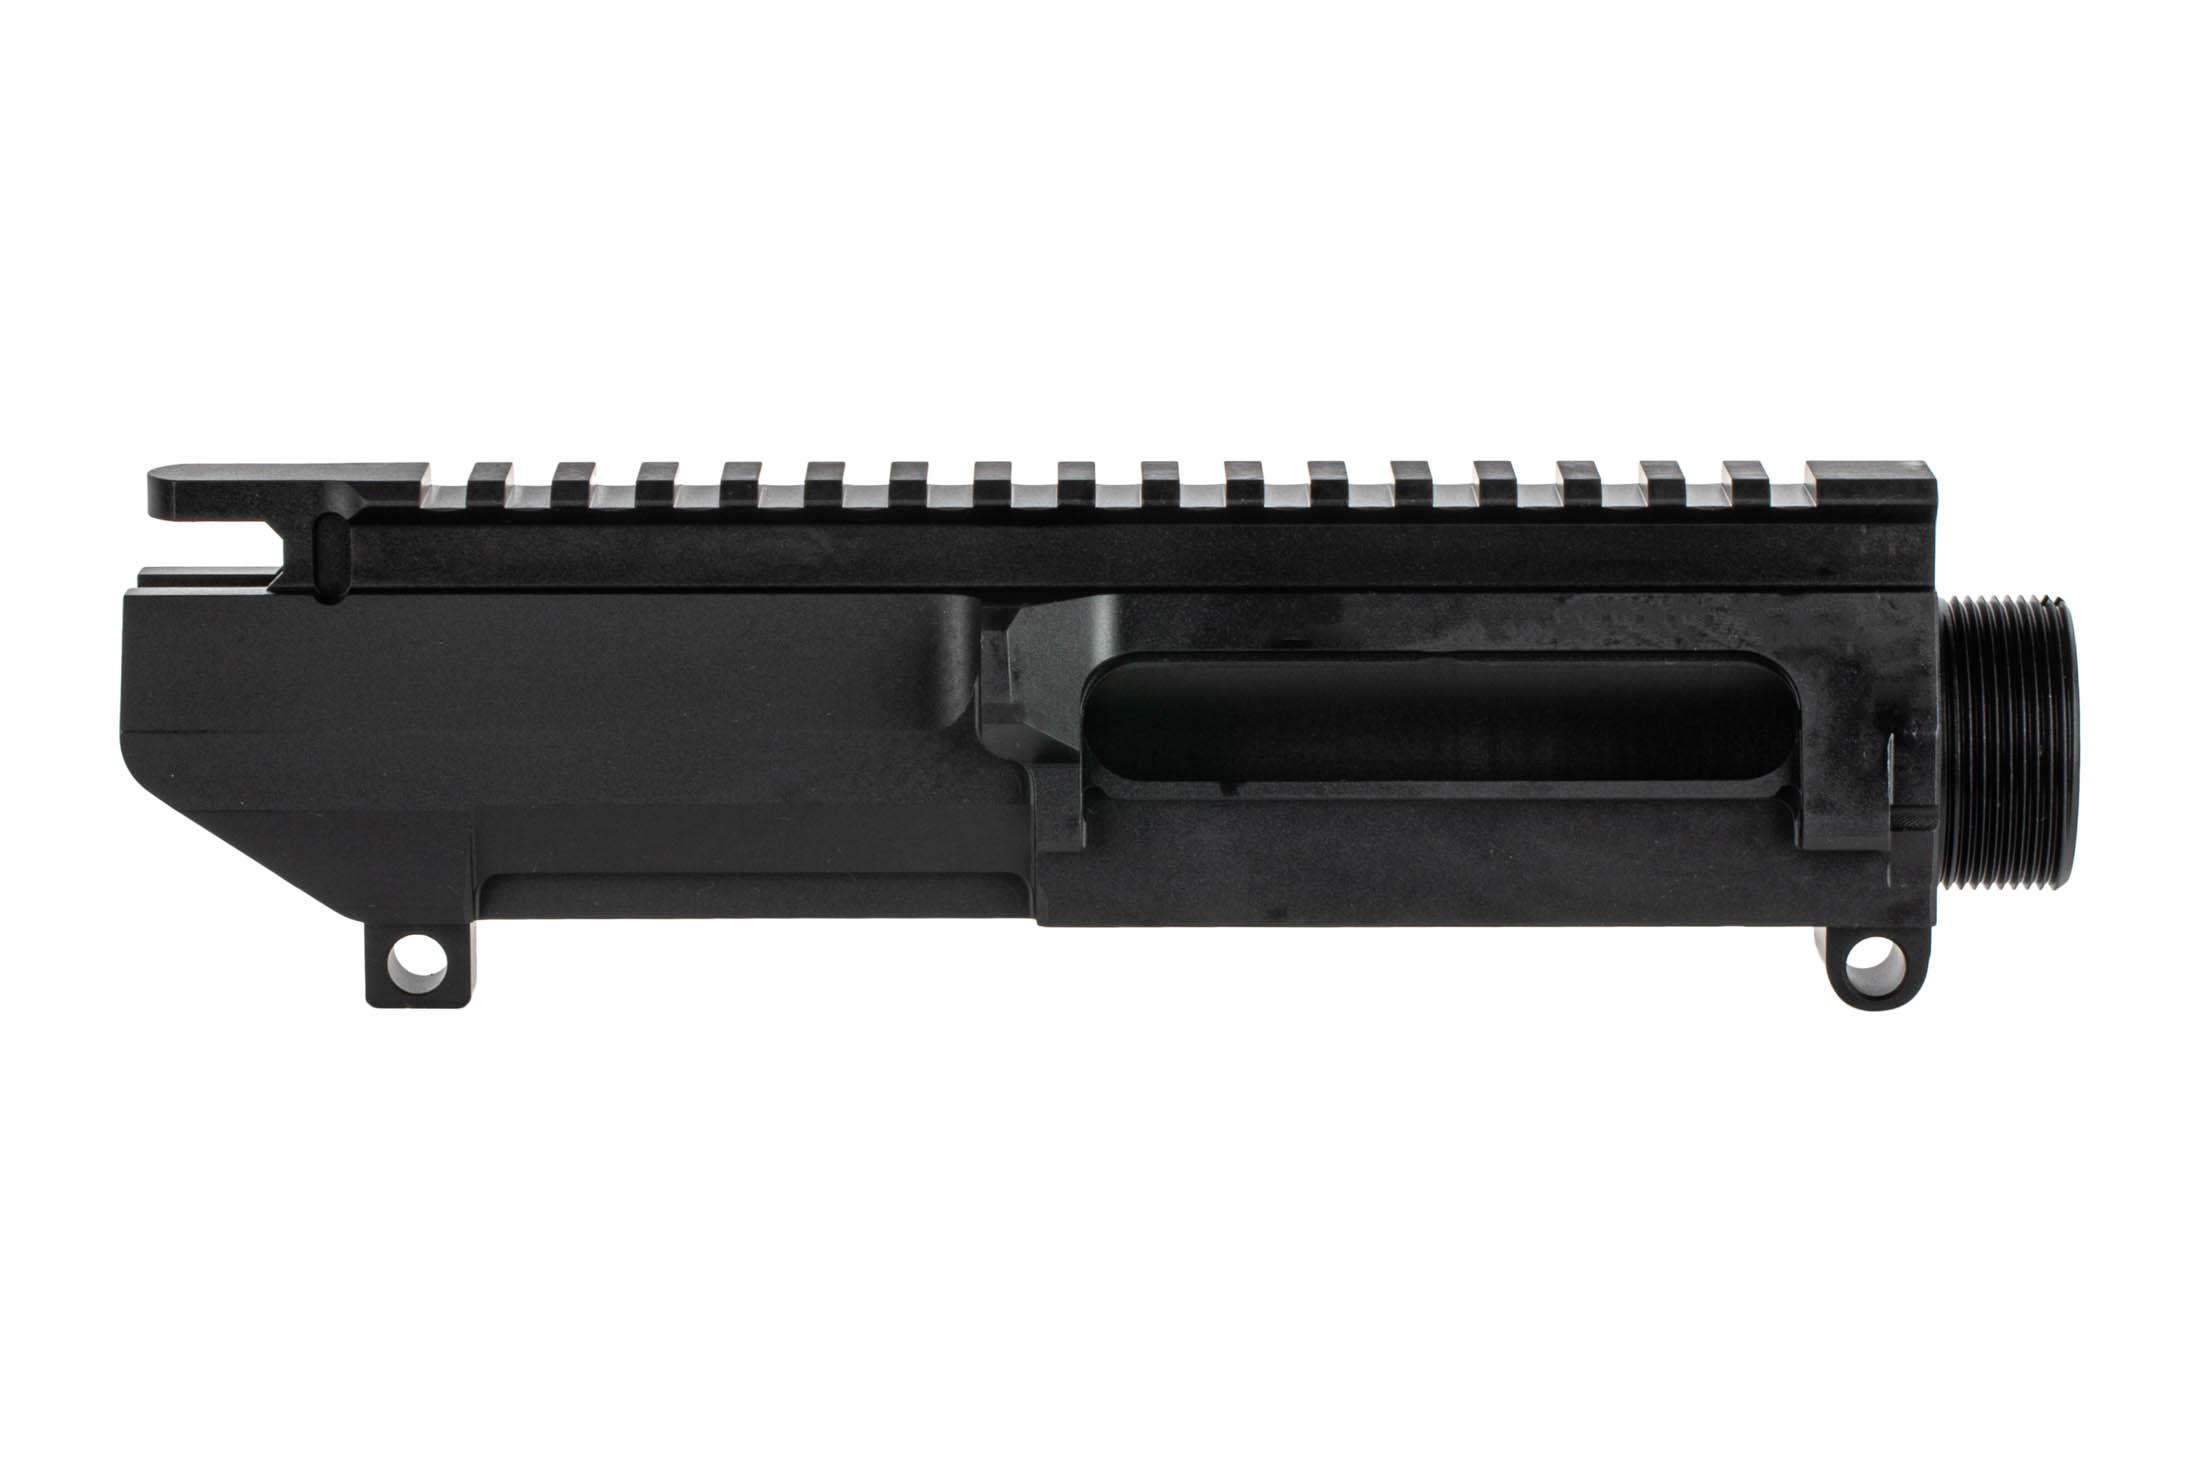 The Centurion Arms MK11 7.62 Billet Upper Receiver features a slick side design